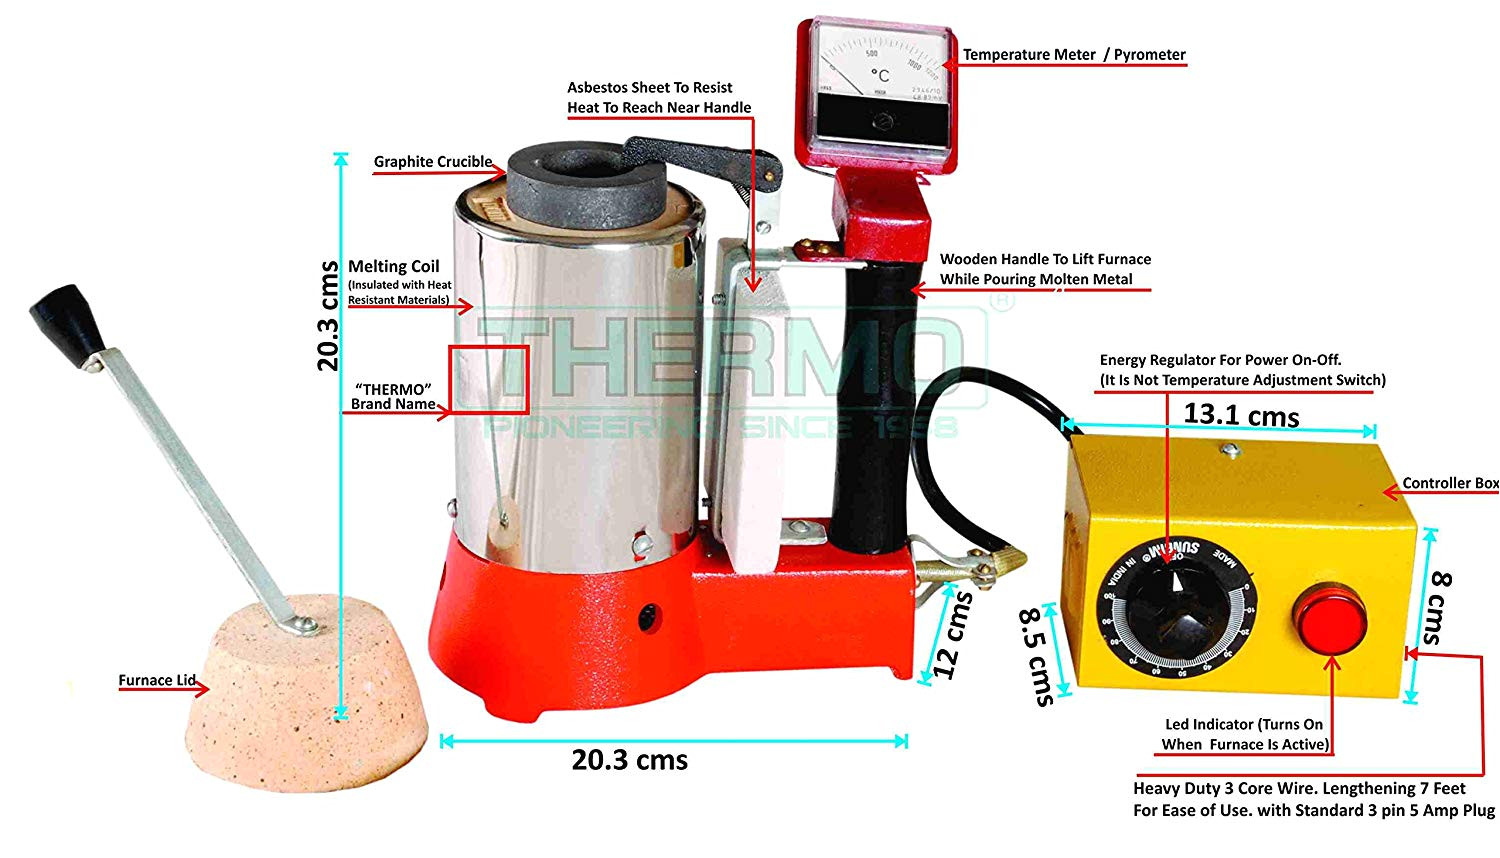 thermo tico hm 1kg handy metal melting furnace 1kg gold capacity with maximum temperature 1200 c can used to melt silver brass copper led etc